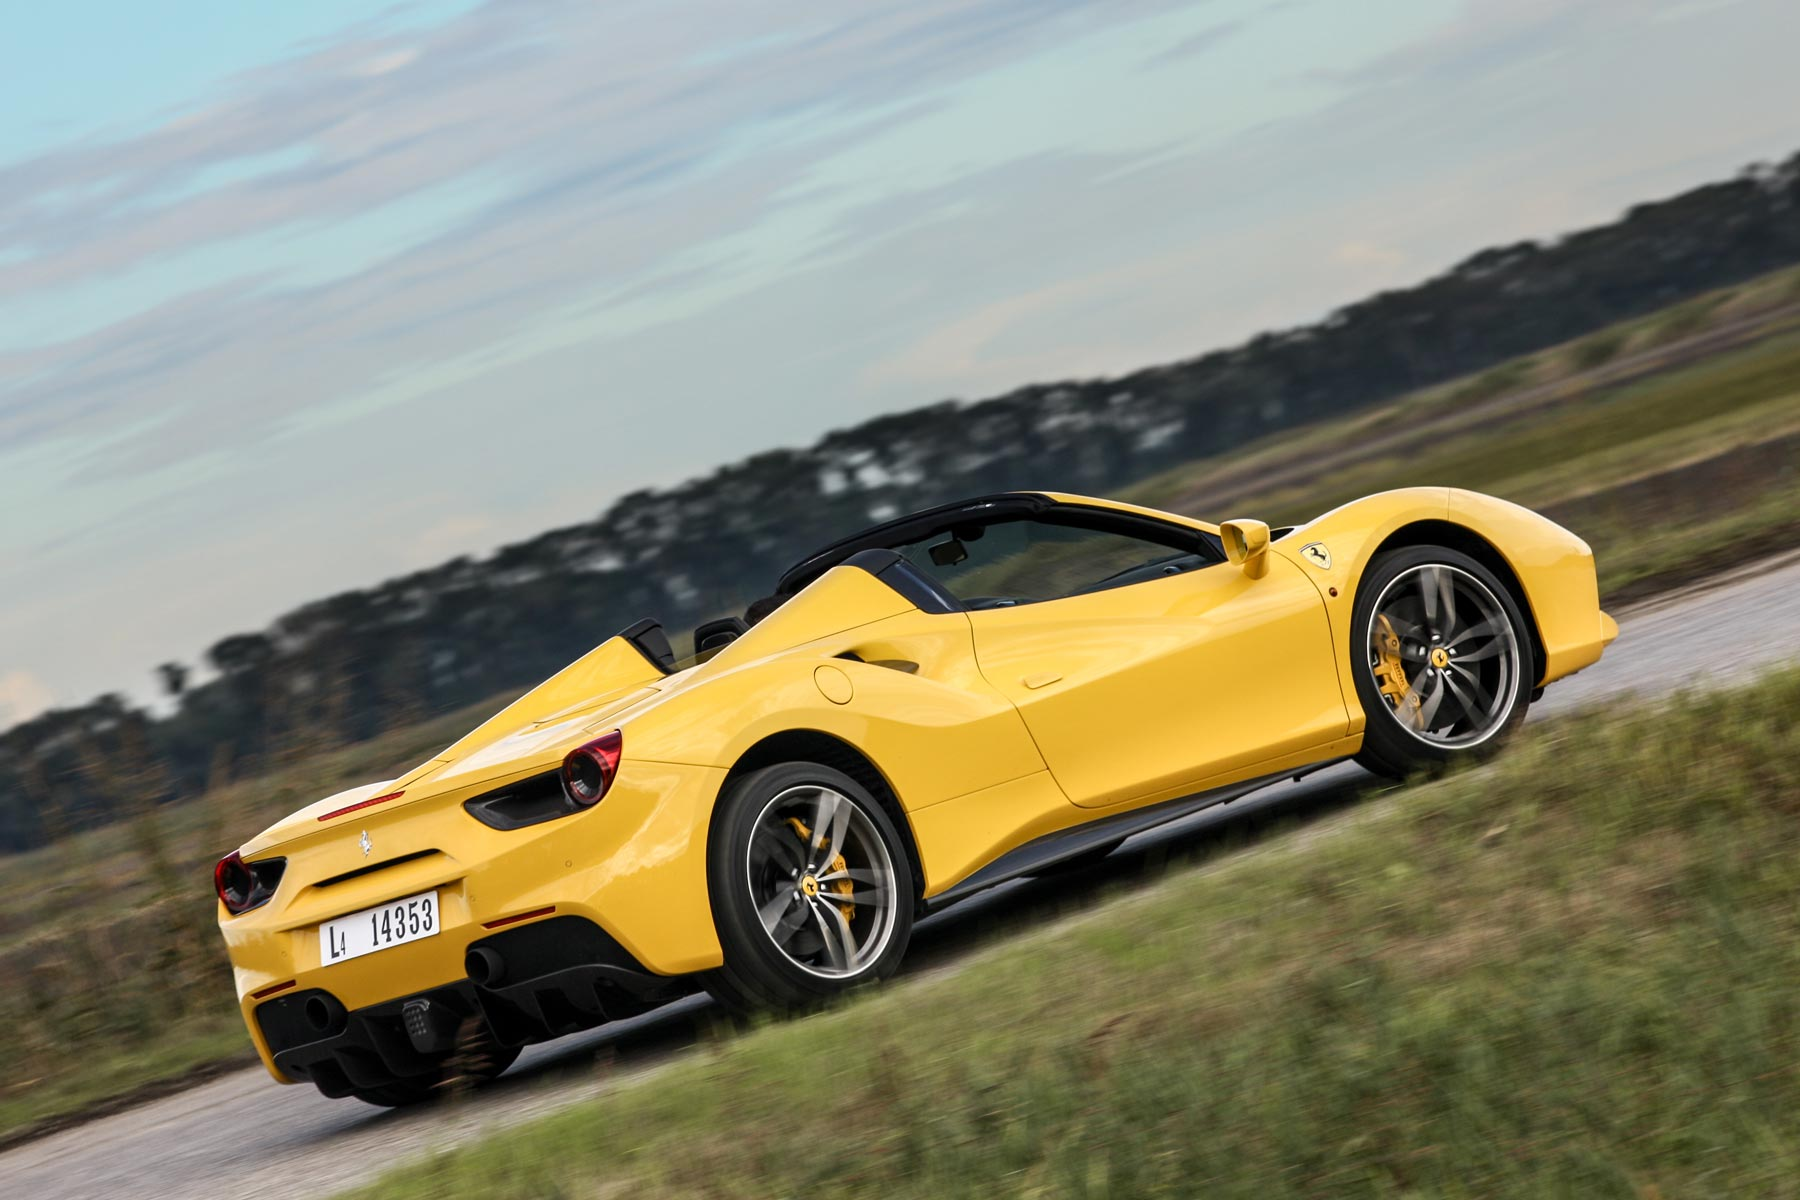 2016 Ferrari 488 Spider: Running costs